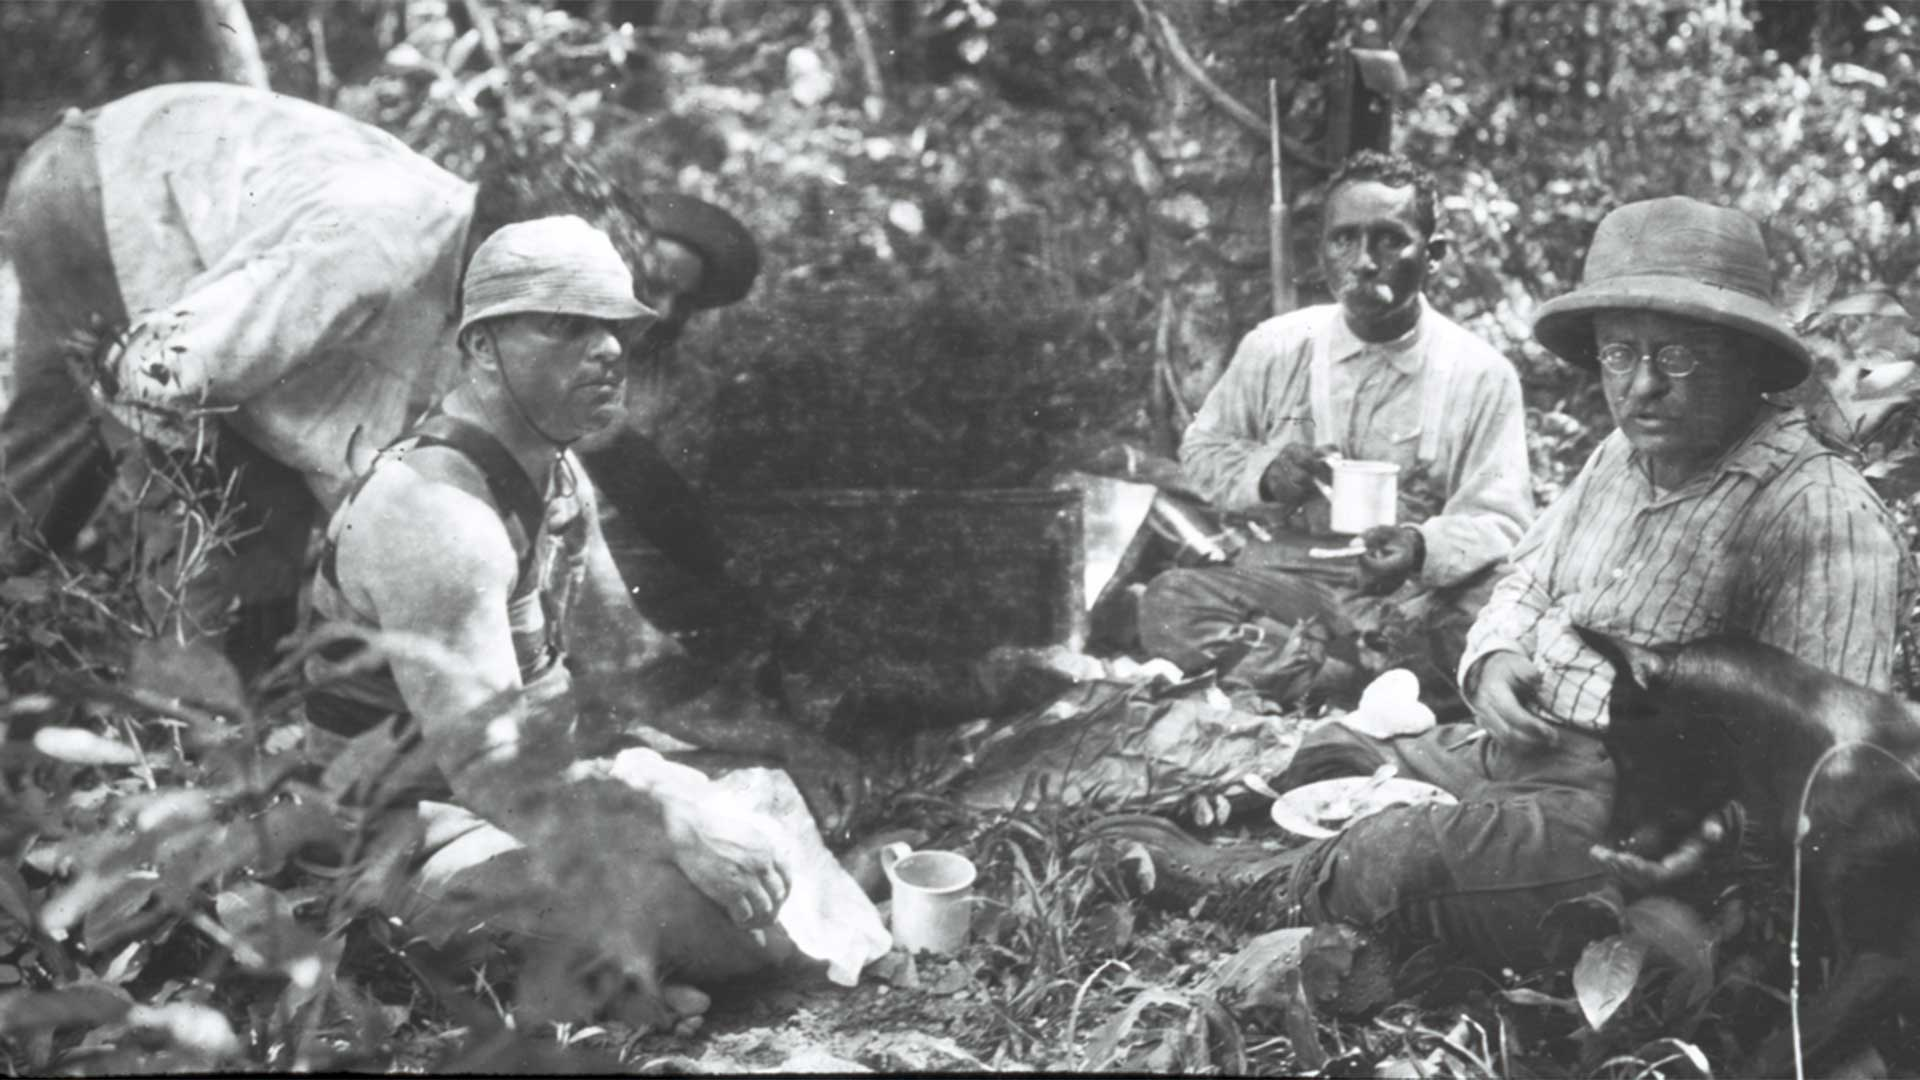 Theodore Roosevelt, Candido Rondon and camaradas sitting in camp, 1914.